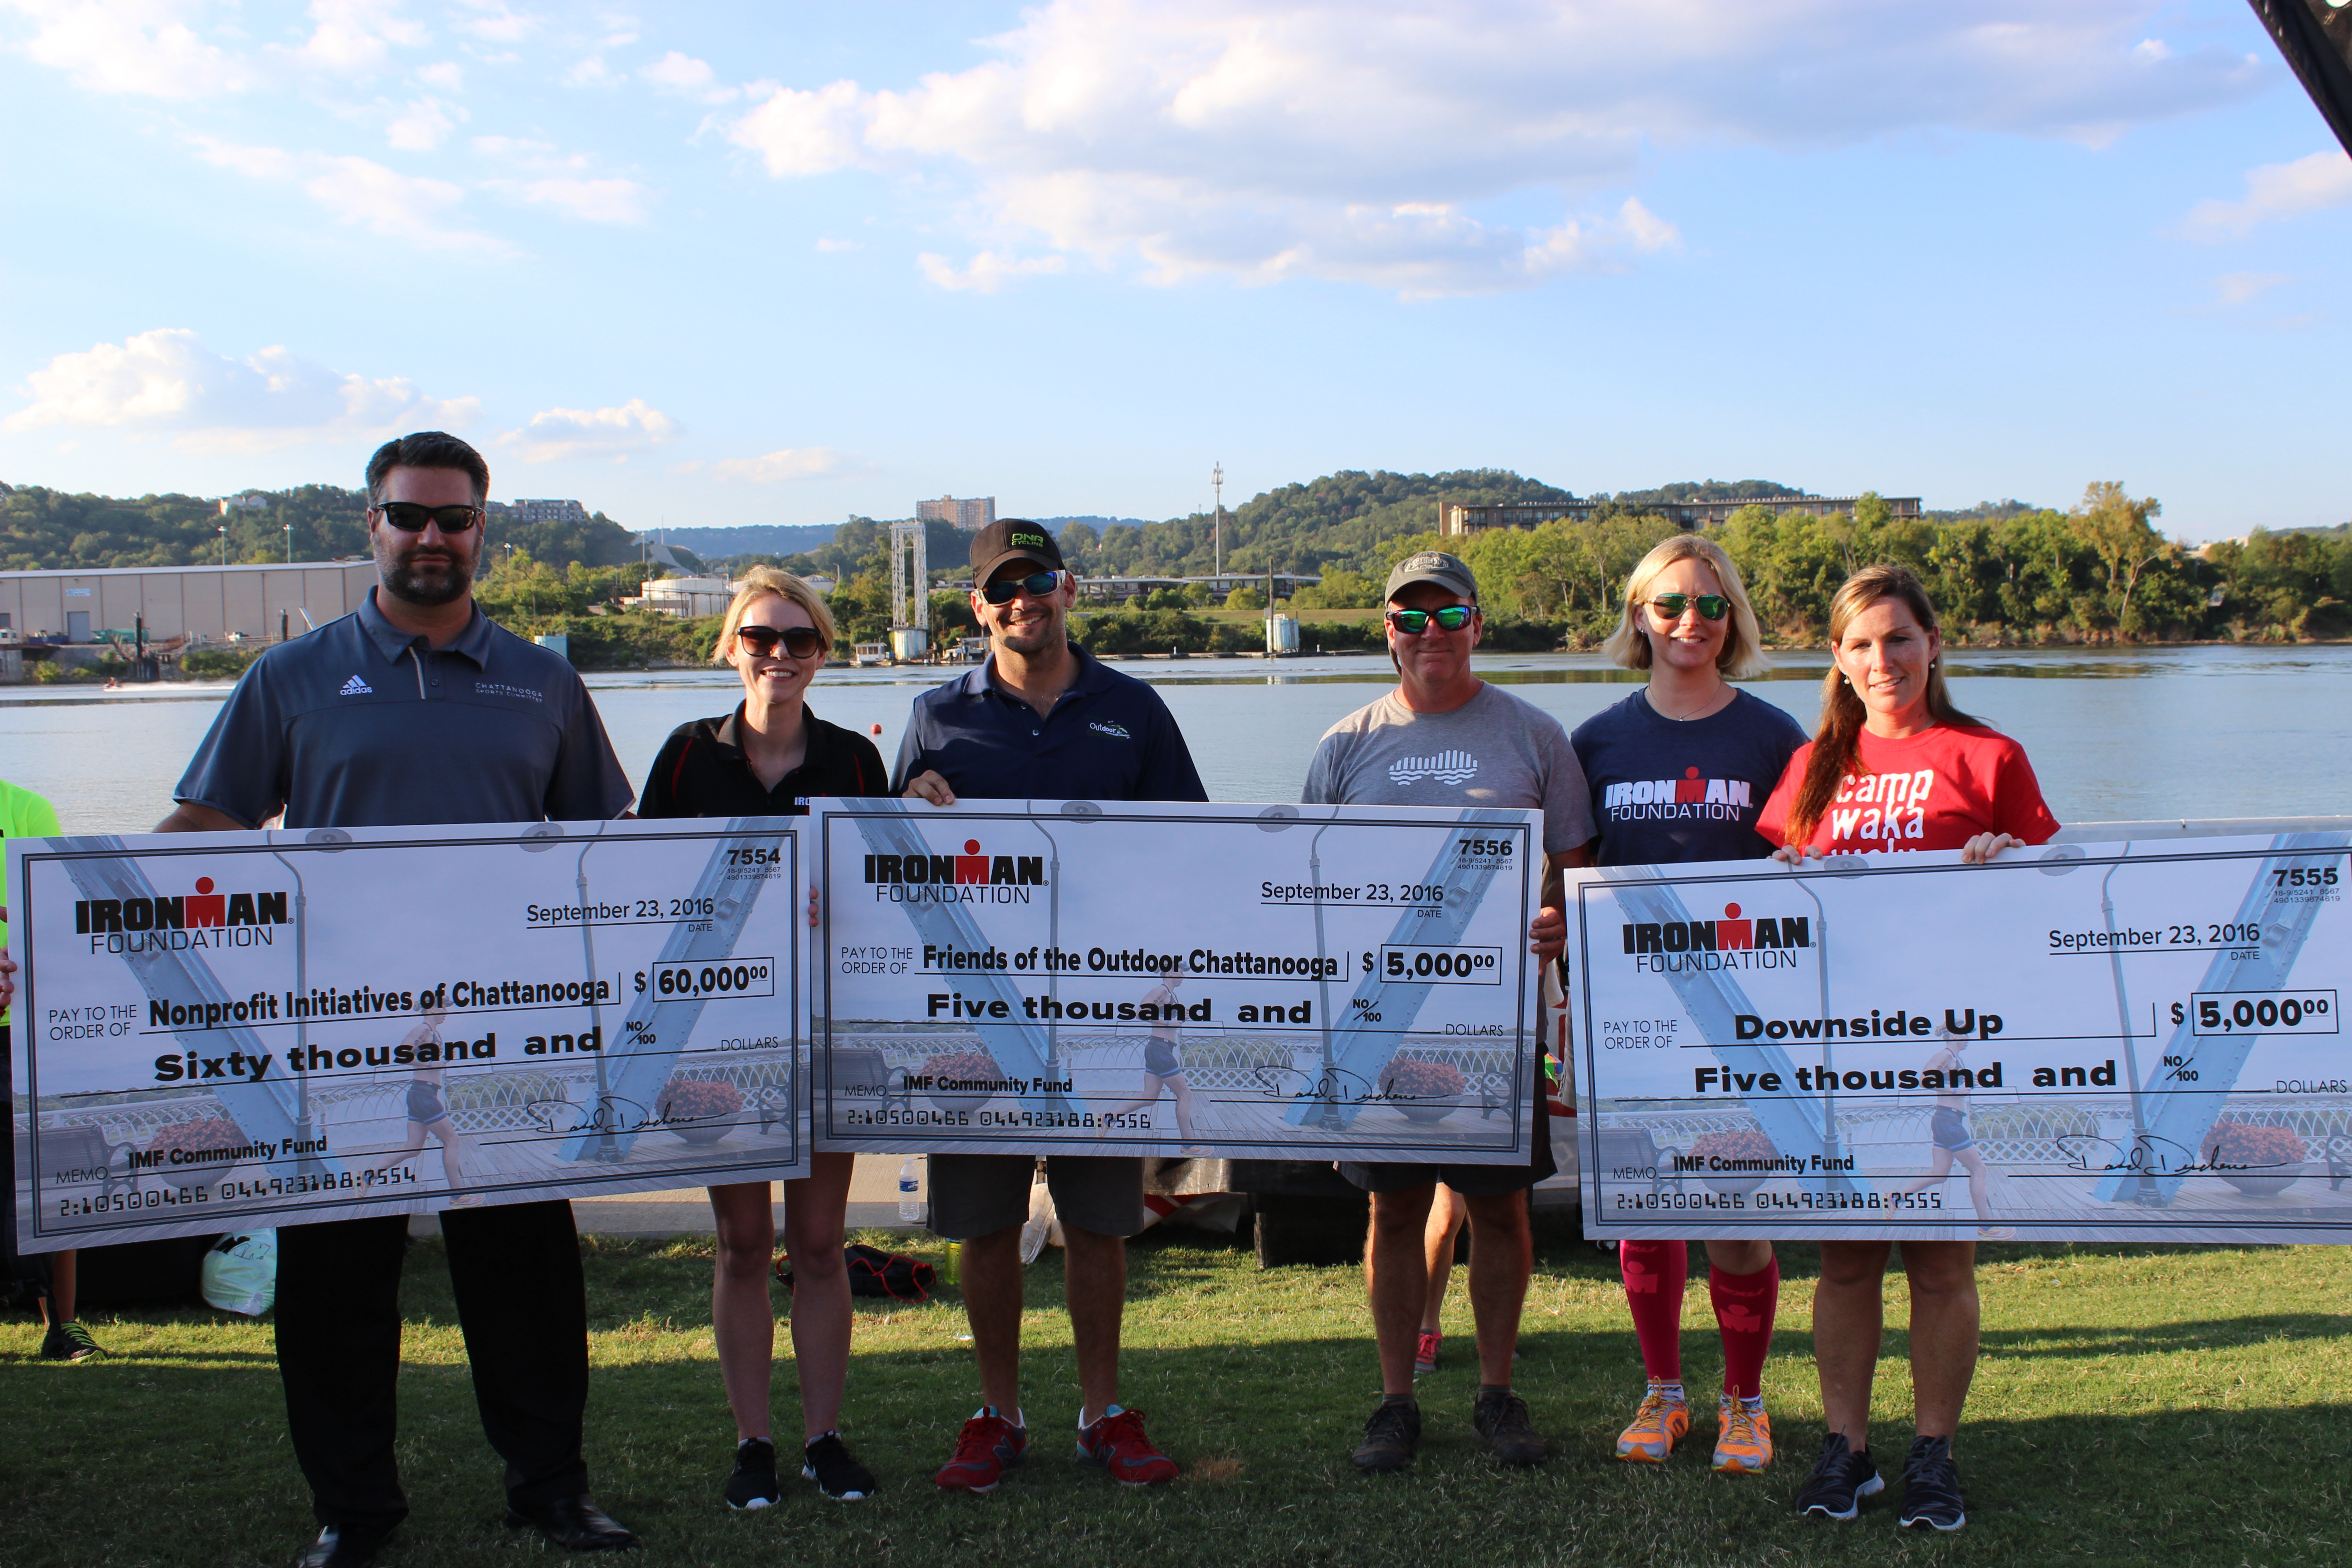 At the Athlete Welcome Ceremony, The IRONMAN Foundation presented checks to: Downside Up, Friends of The Outdoor Chattanooga, and various IRONMAN Chattanooga Volunteer Groups. TEAM IMF Athlete & IRONMAN Chattanooga Top Fundraiser, Erica Maynard-Uliasz, helped to present the grant awards!